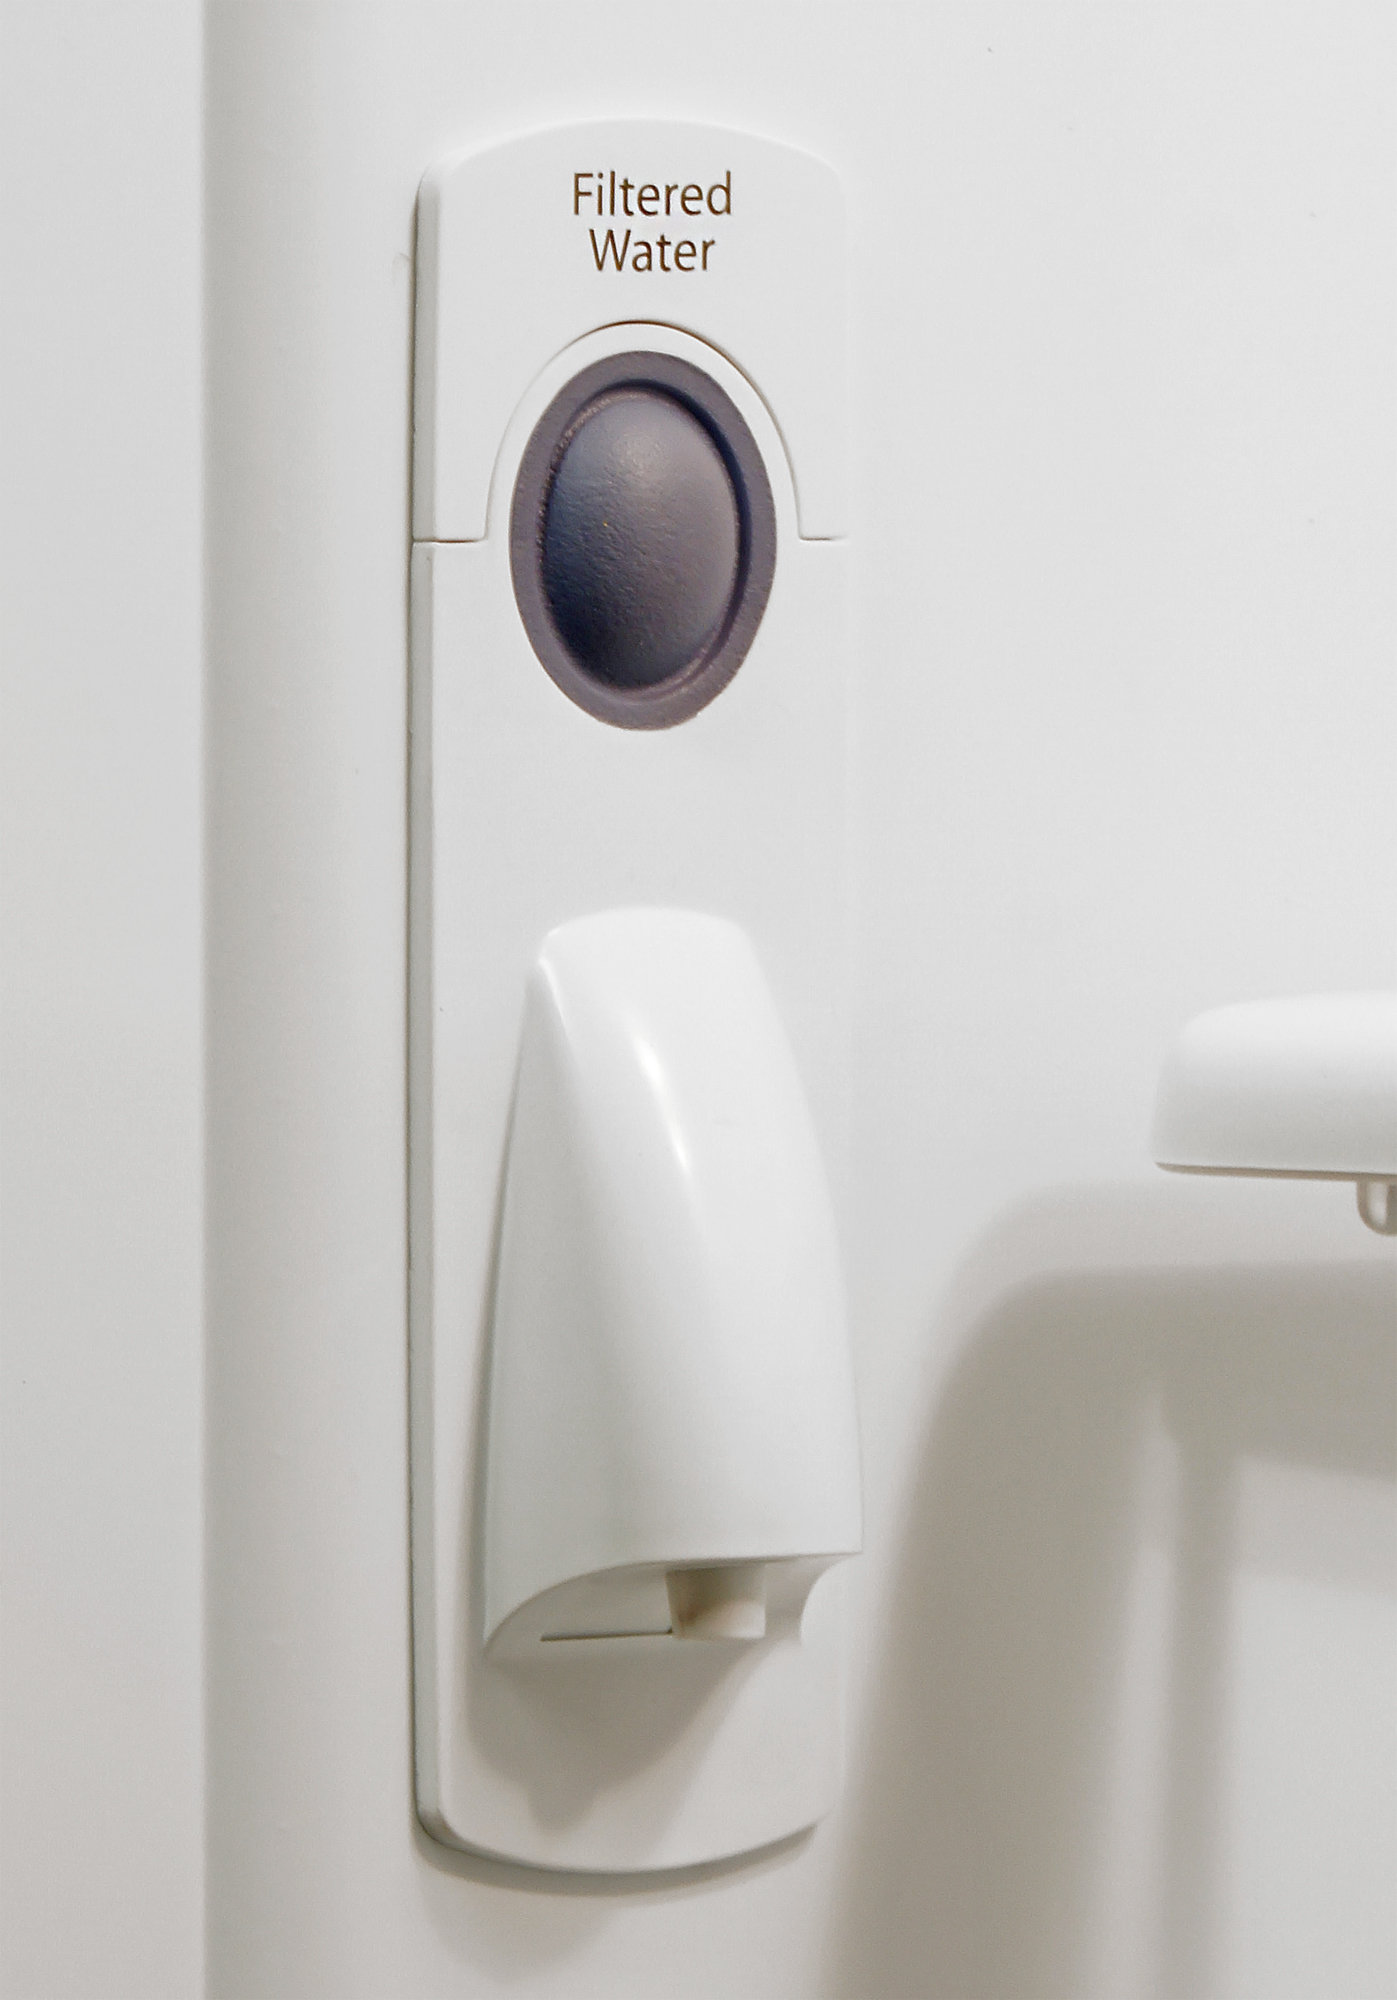 The unobtrusive water dispenser is found inside the Kenmore 72013.